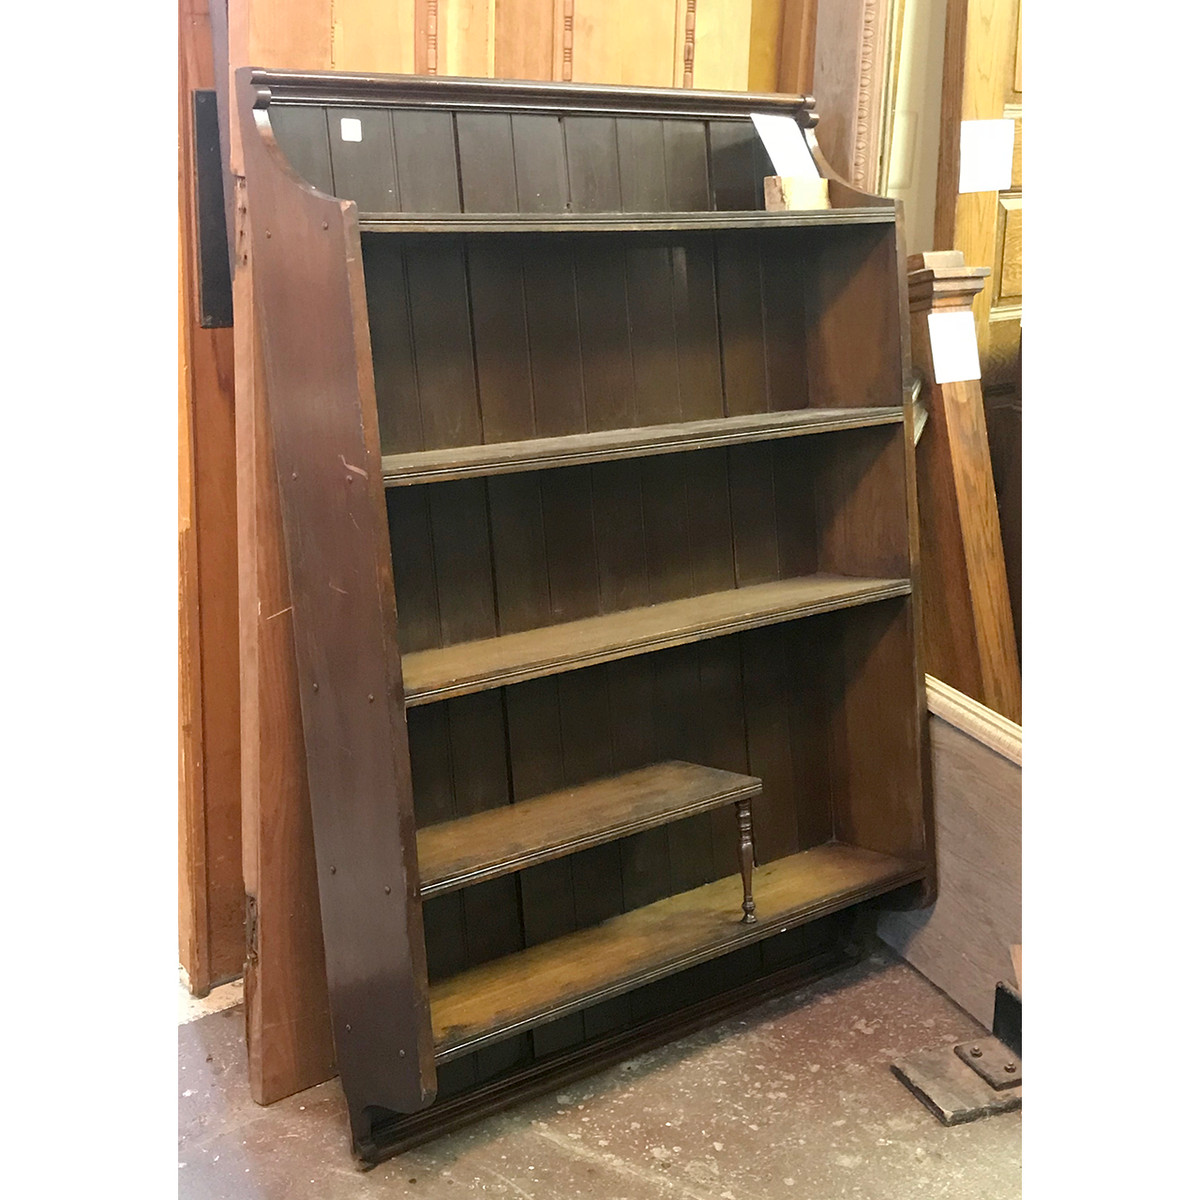 F18035 - Antique Victorian Wall Mounted Shelving Unit